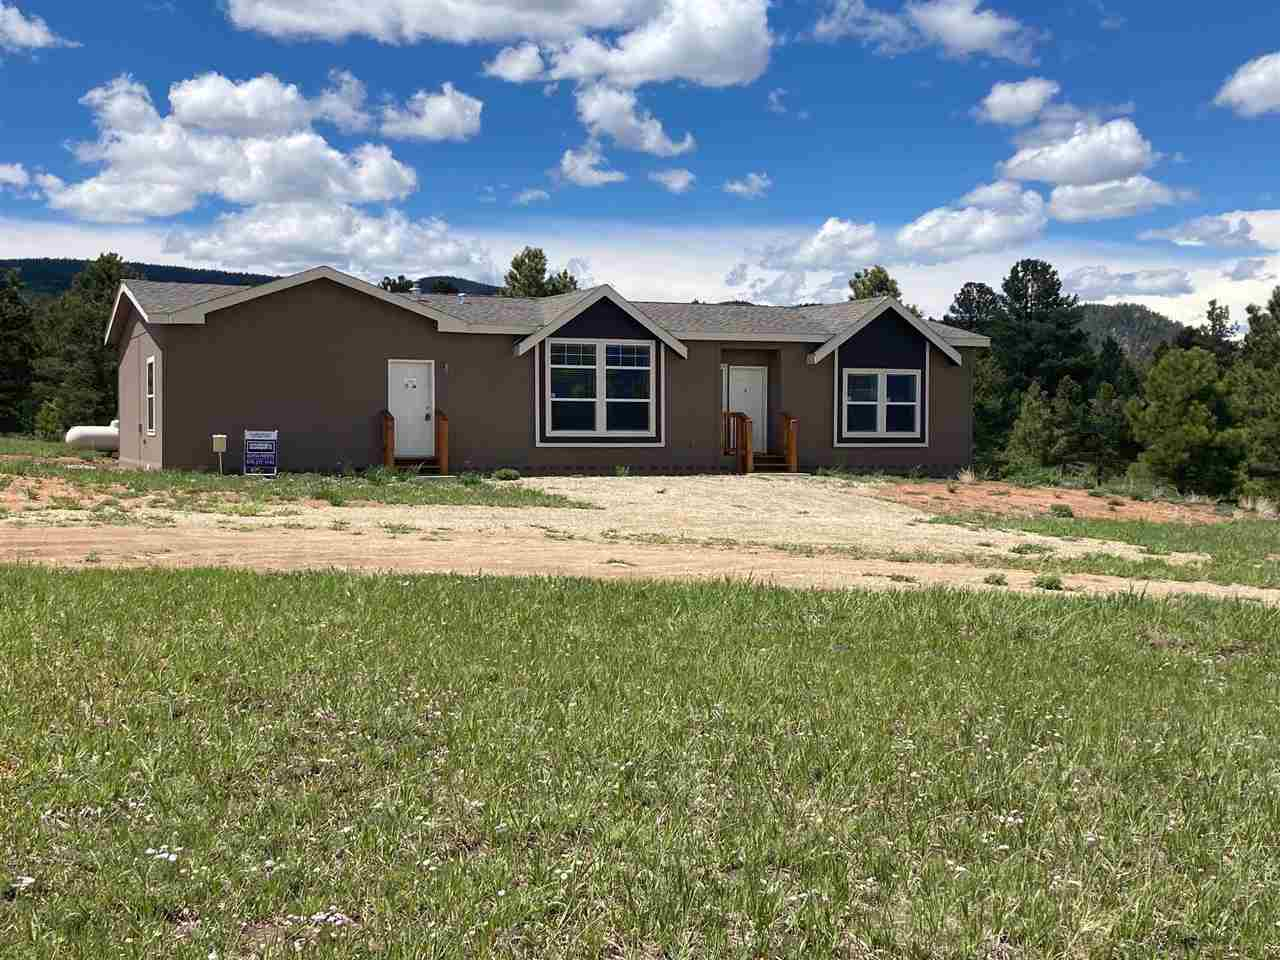 25 Moreno Ct, Angel Fire, NM 87710